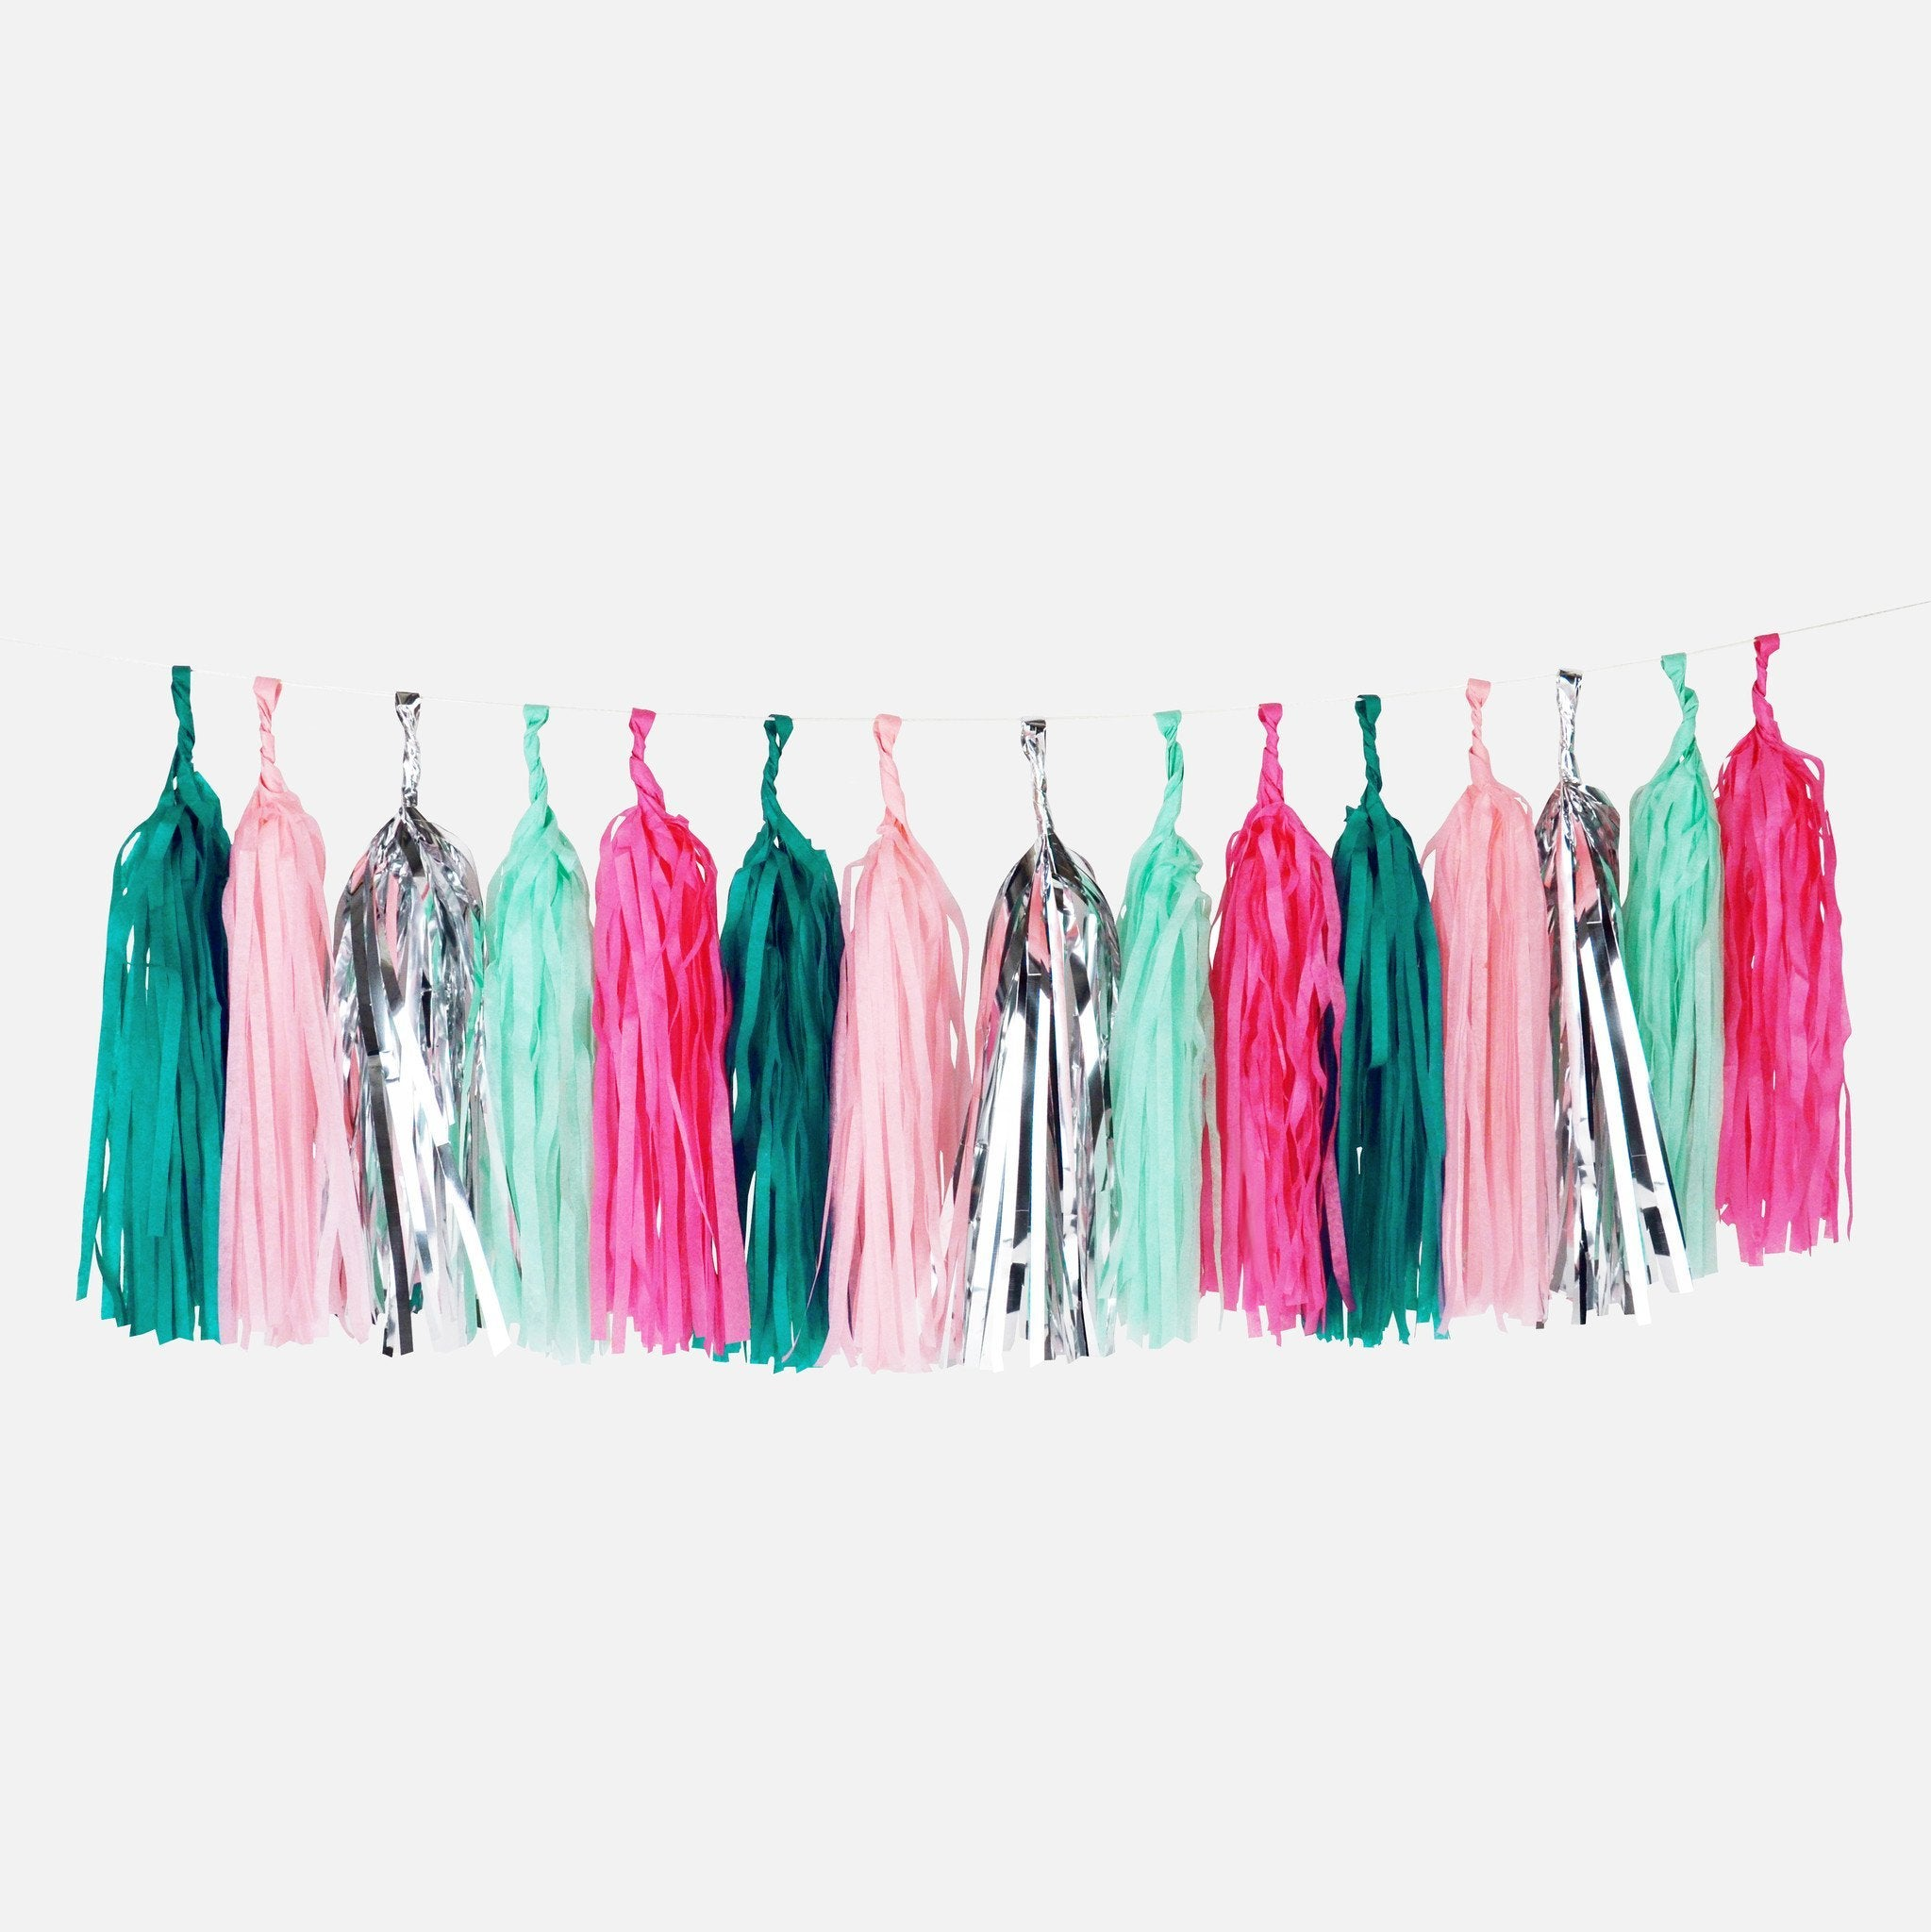 Tassel Garland Kit - Sea Punk (4m 20 Tassels)